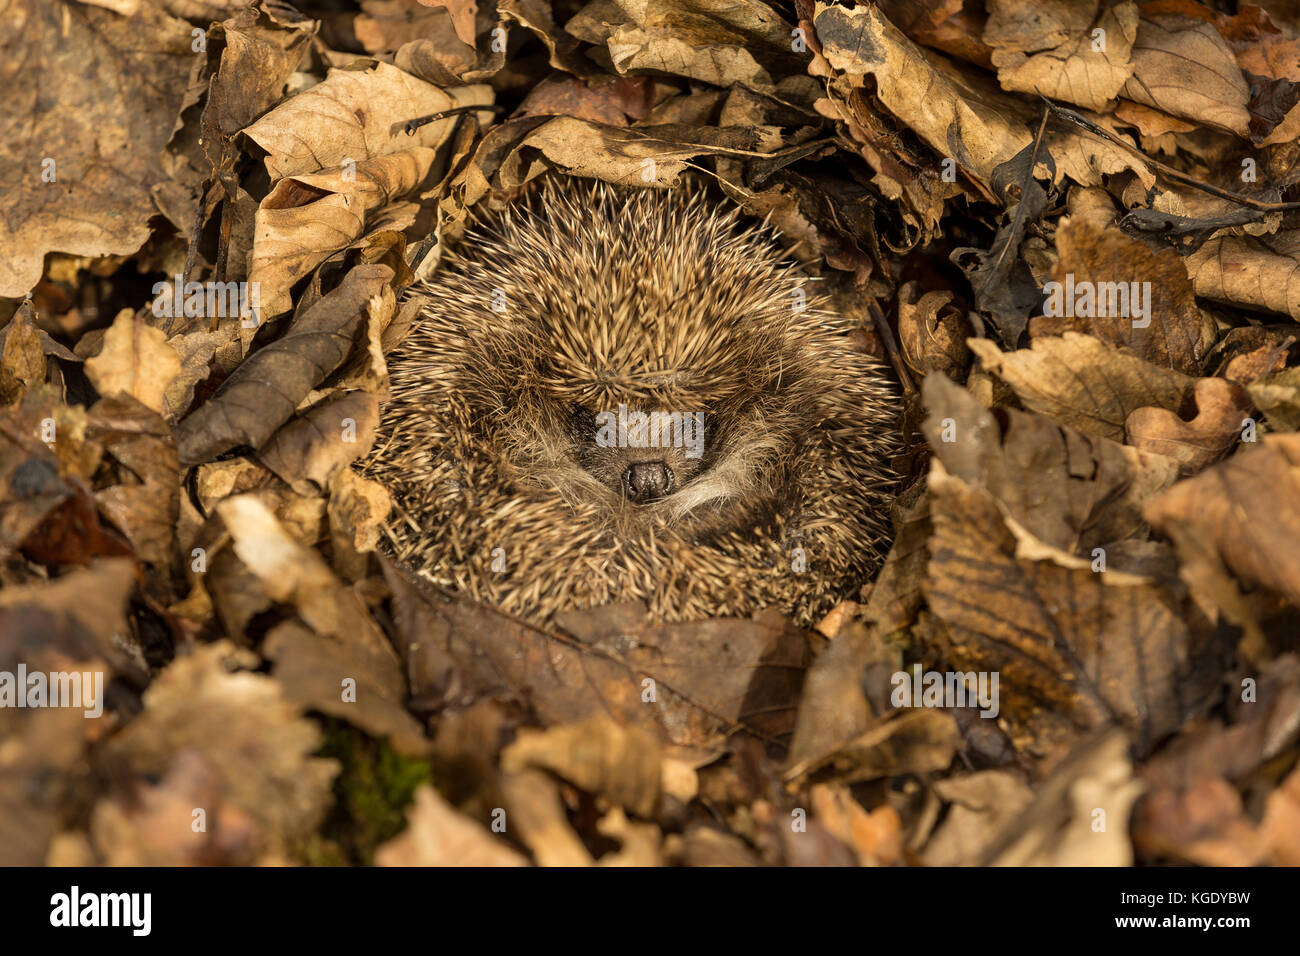 Hedgehog, Erinaceus Europaeus, wild, native, European hedgehog curled into a ball and hibernating in brown Autumn - Stock Image